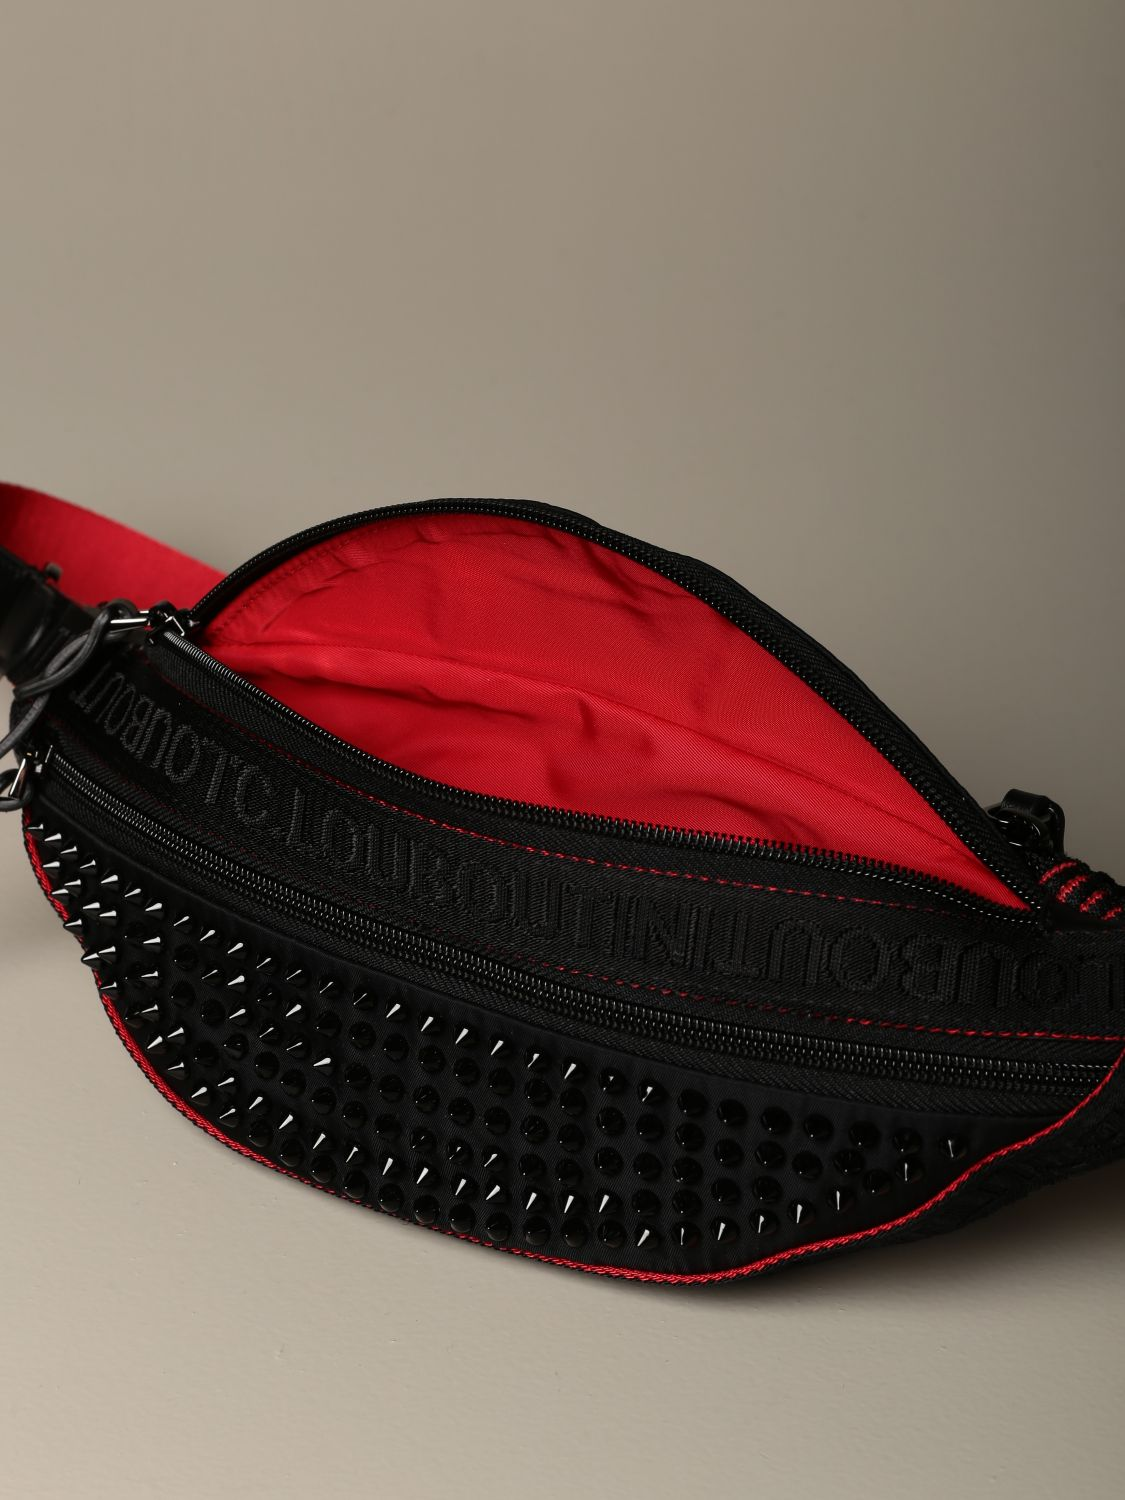 Belt bag Christian Louboutin: Parisnyc Christian Louboutin pouch in nylon with studs black 4